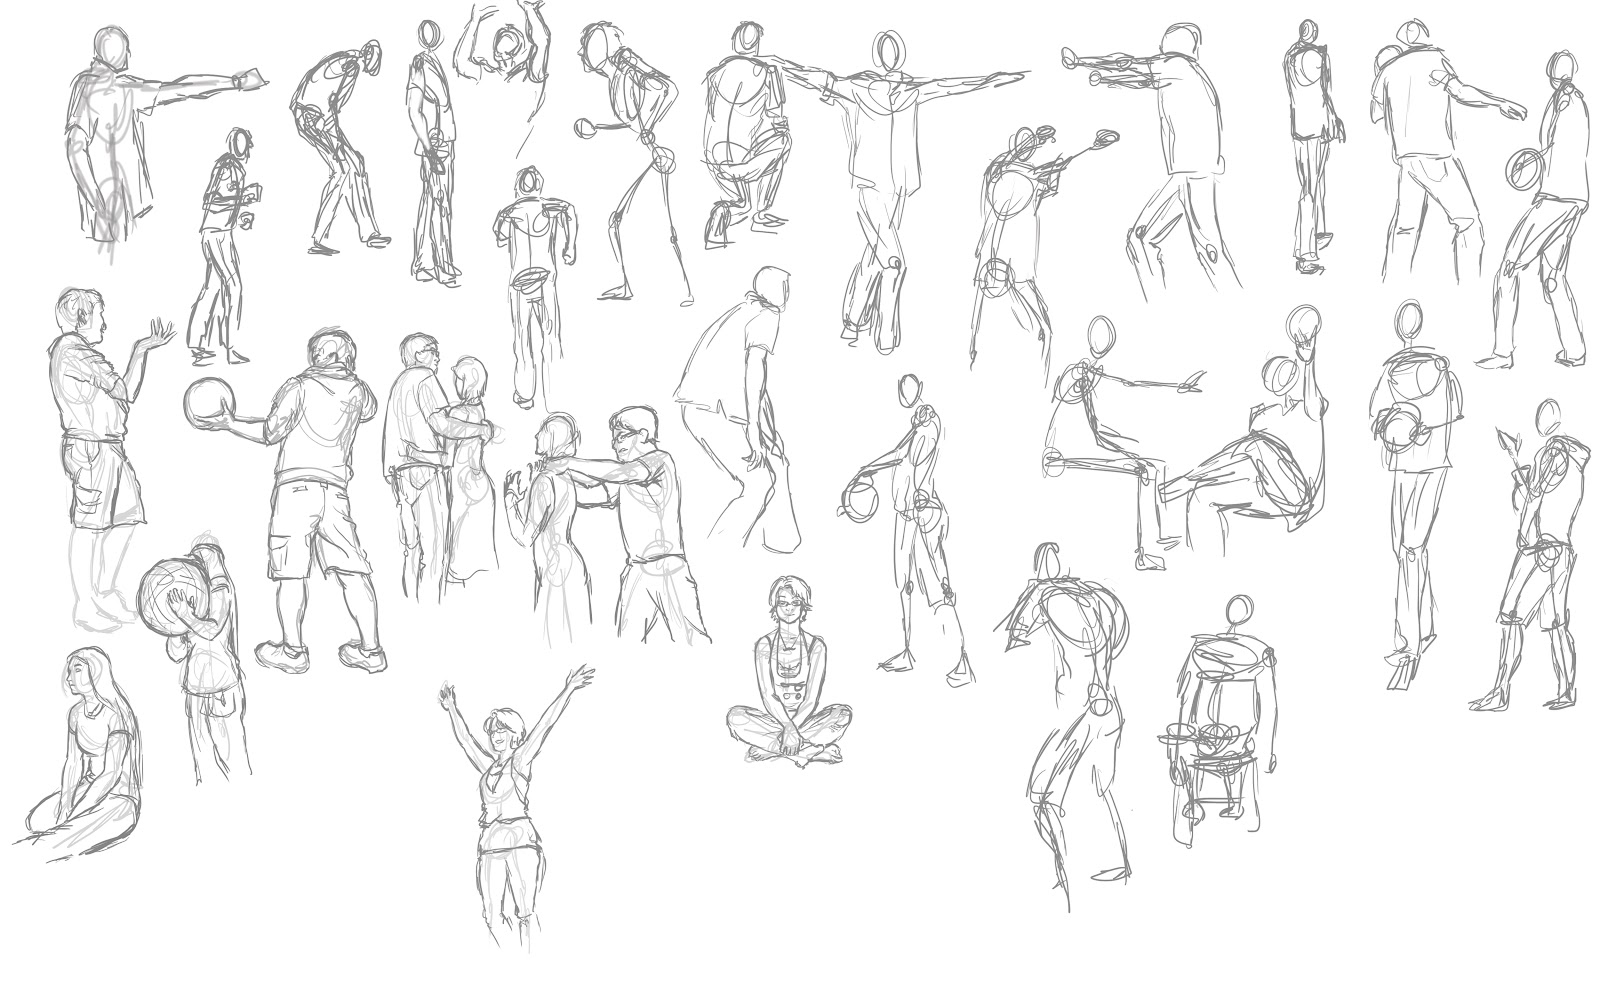 Drawing for Electronic Media: Fantasy & Figure Drawing